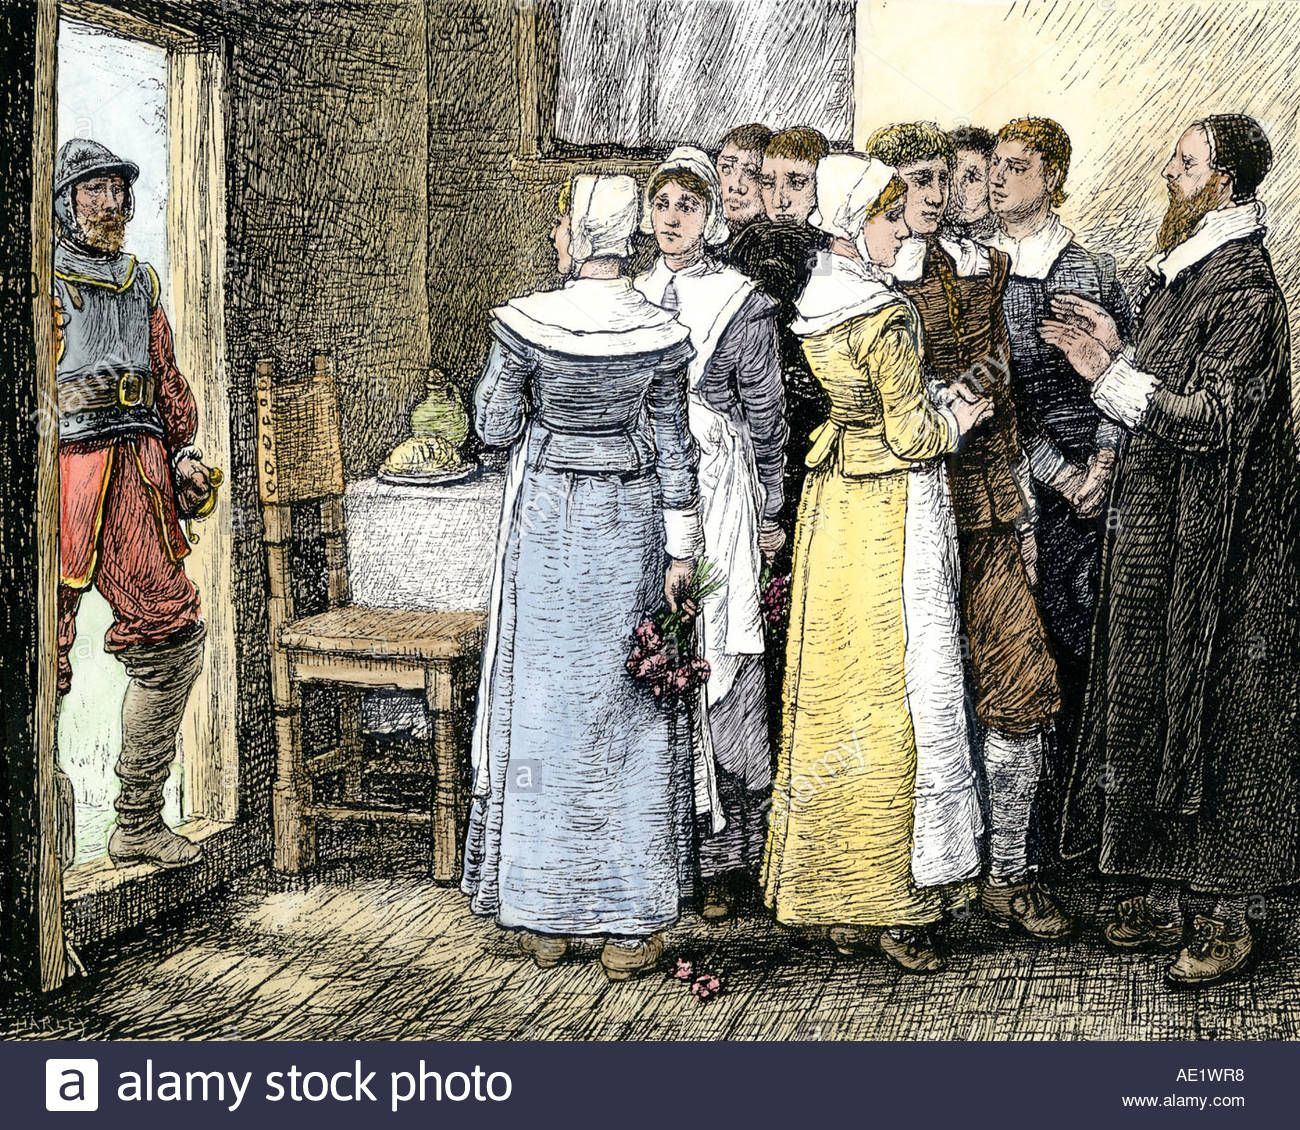 Puritan wedding in New England 1600s. Hand.